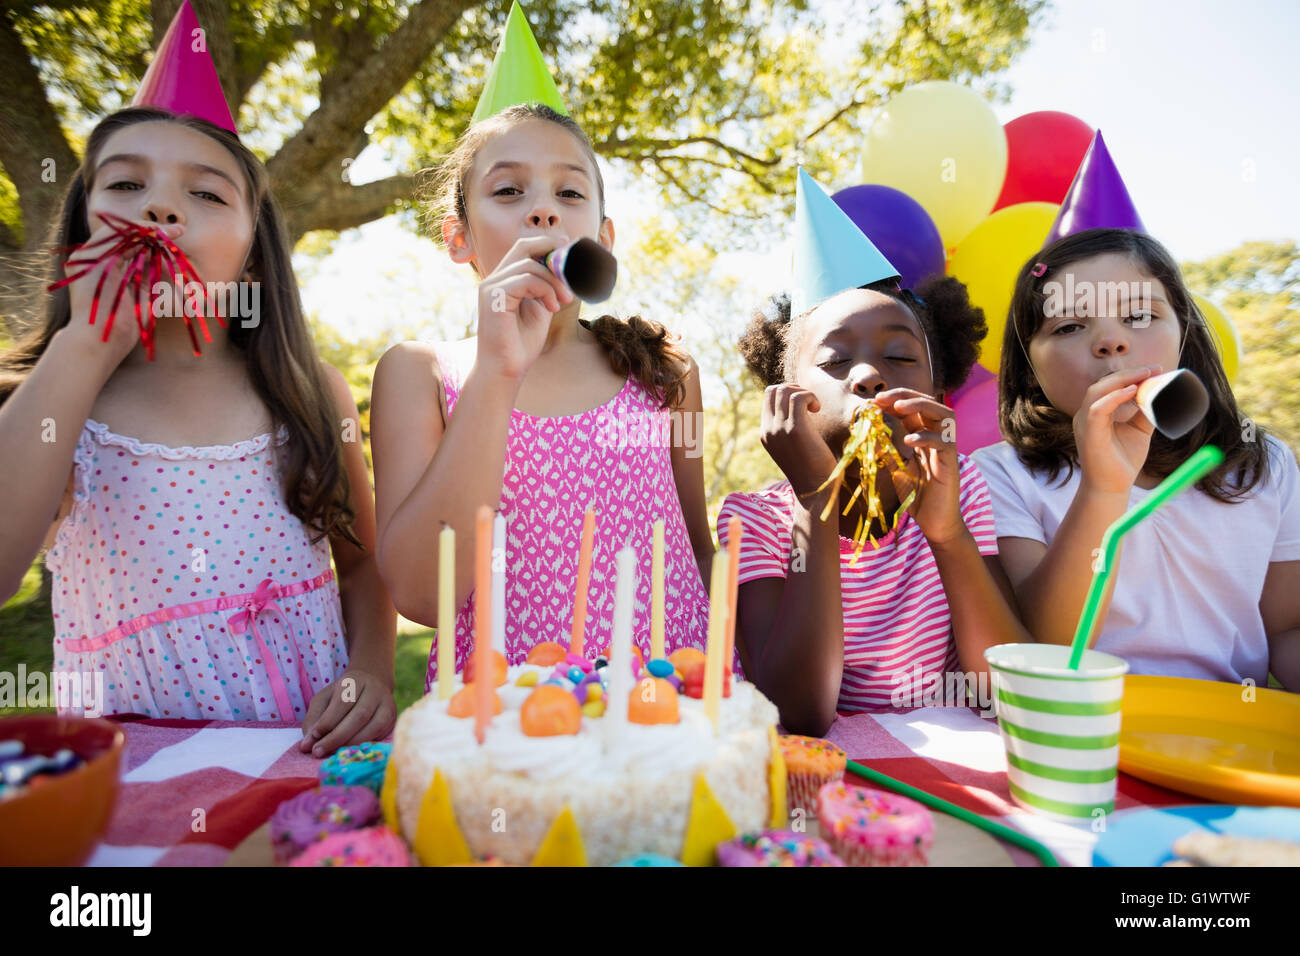 Children breathing out in a birthday trumpets during a birthday party - Stock Image